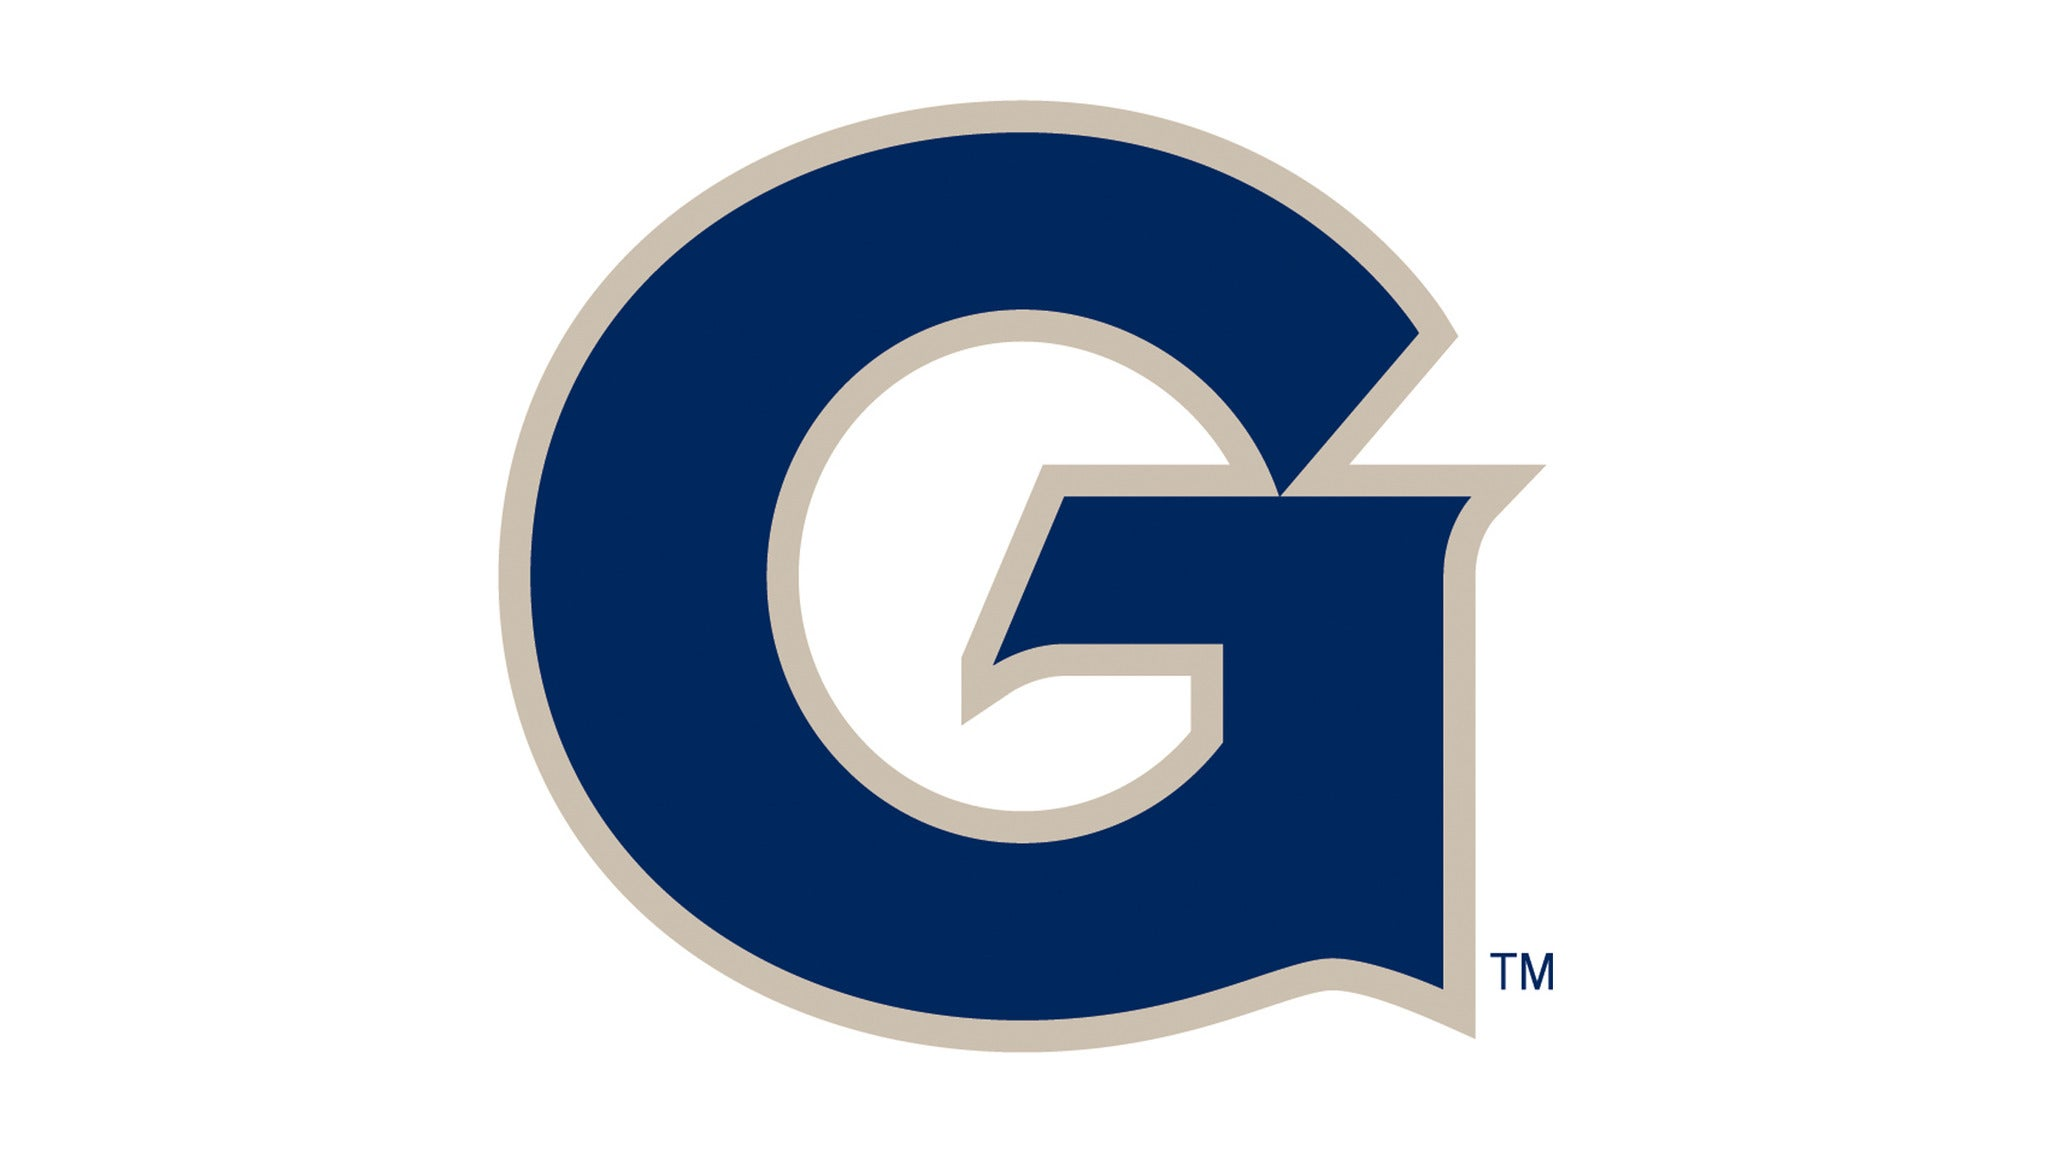 Georgetown Hoyas Men's Basketball vs. Xavier Musketeers Men's Basketball